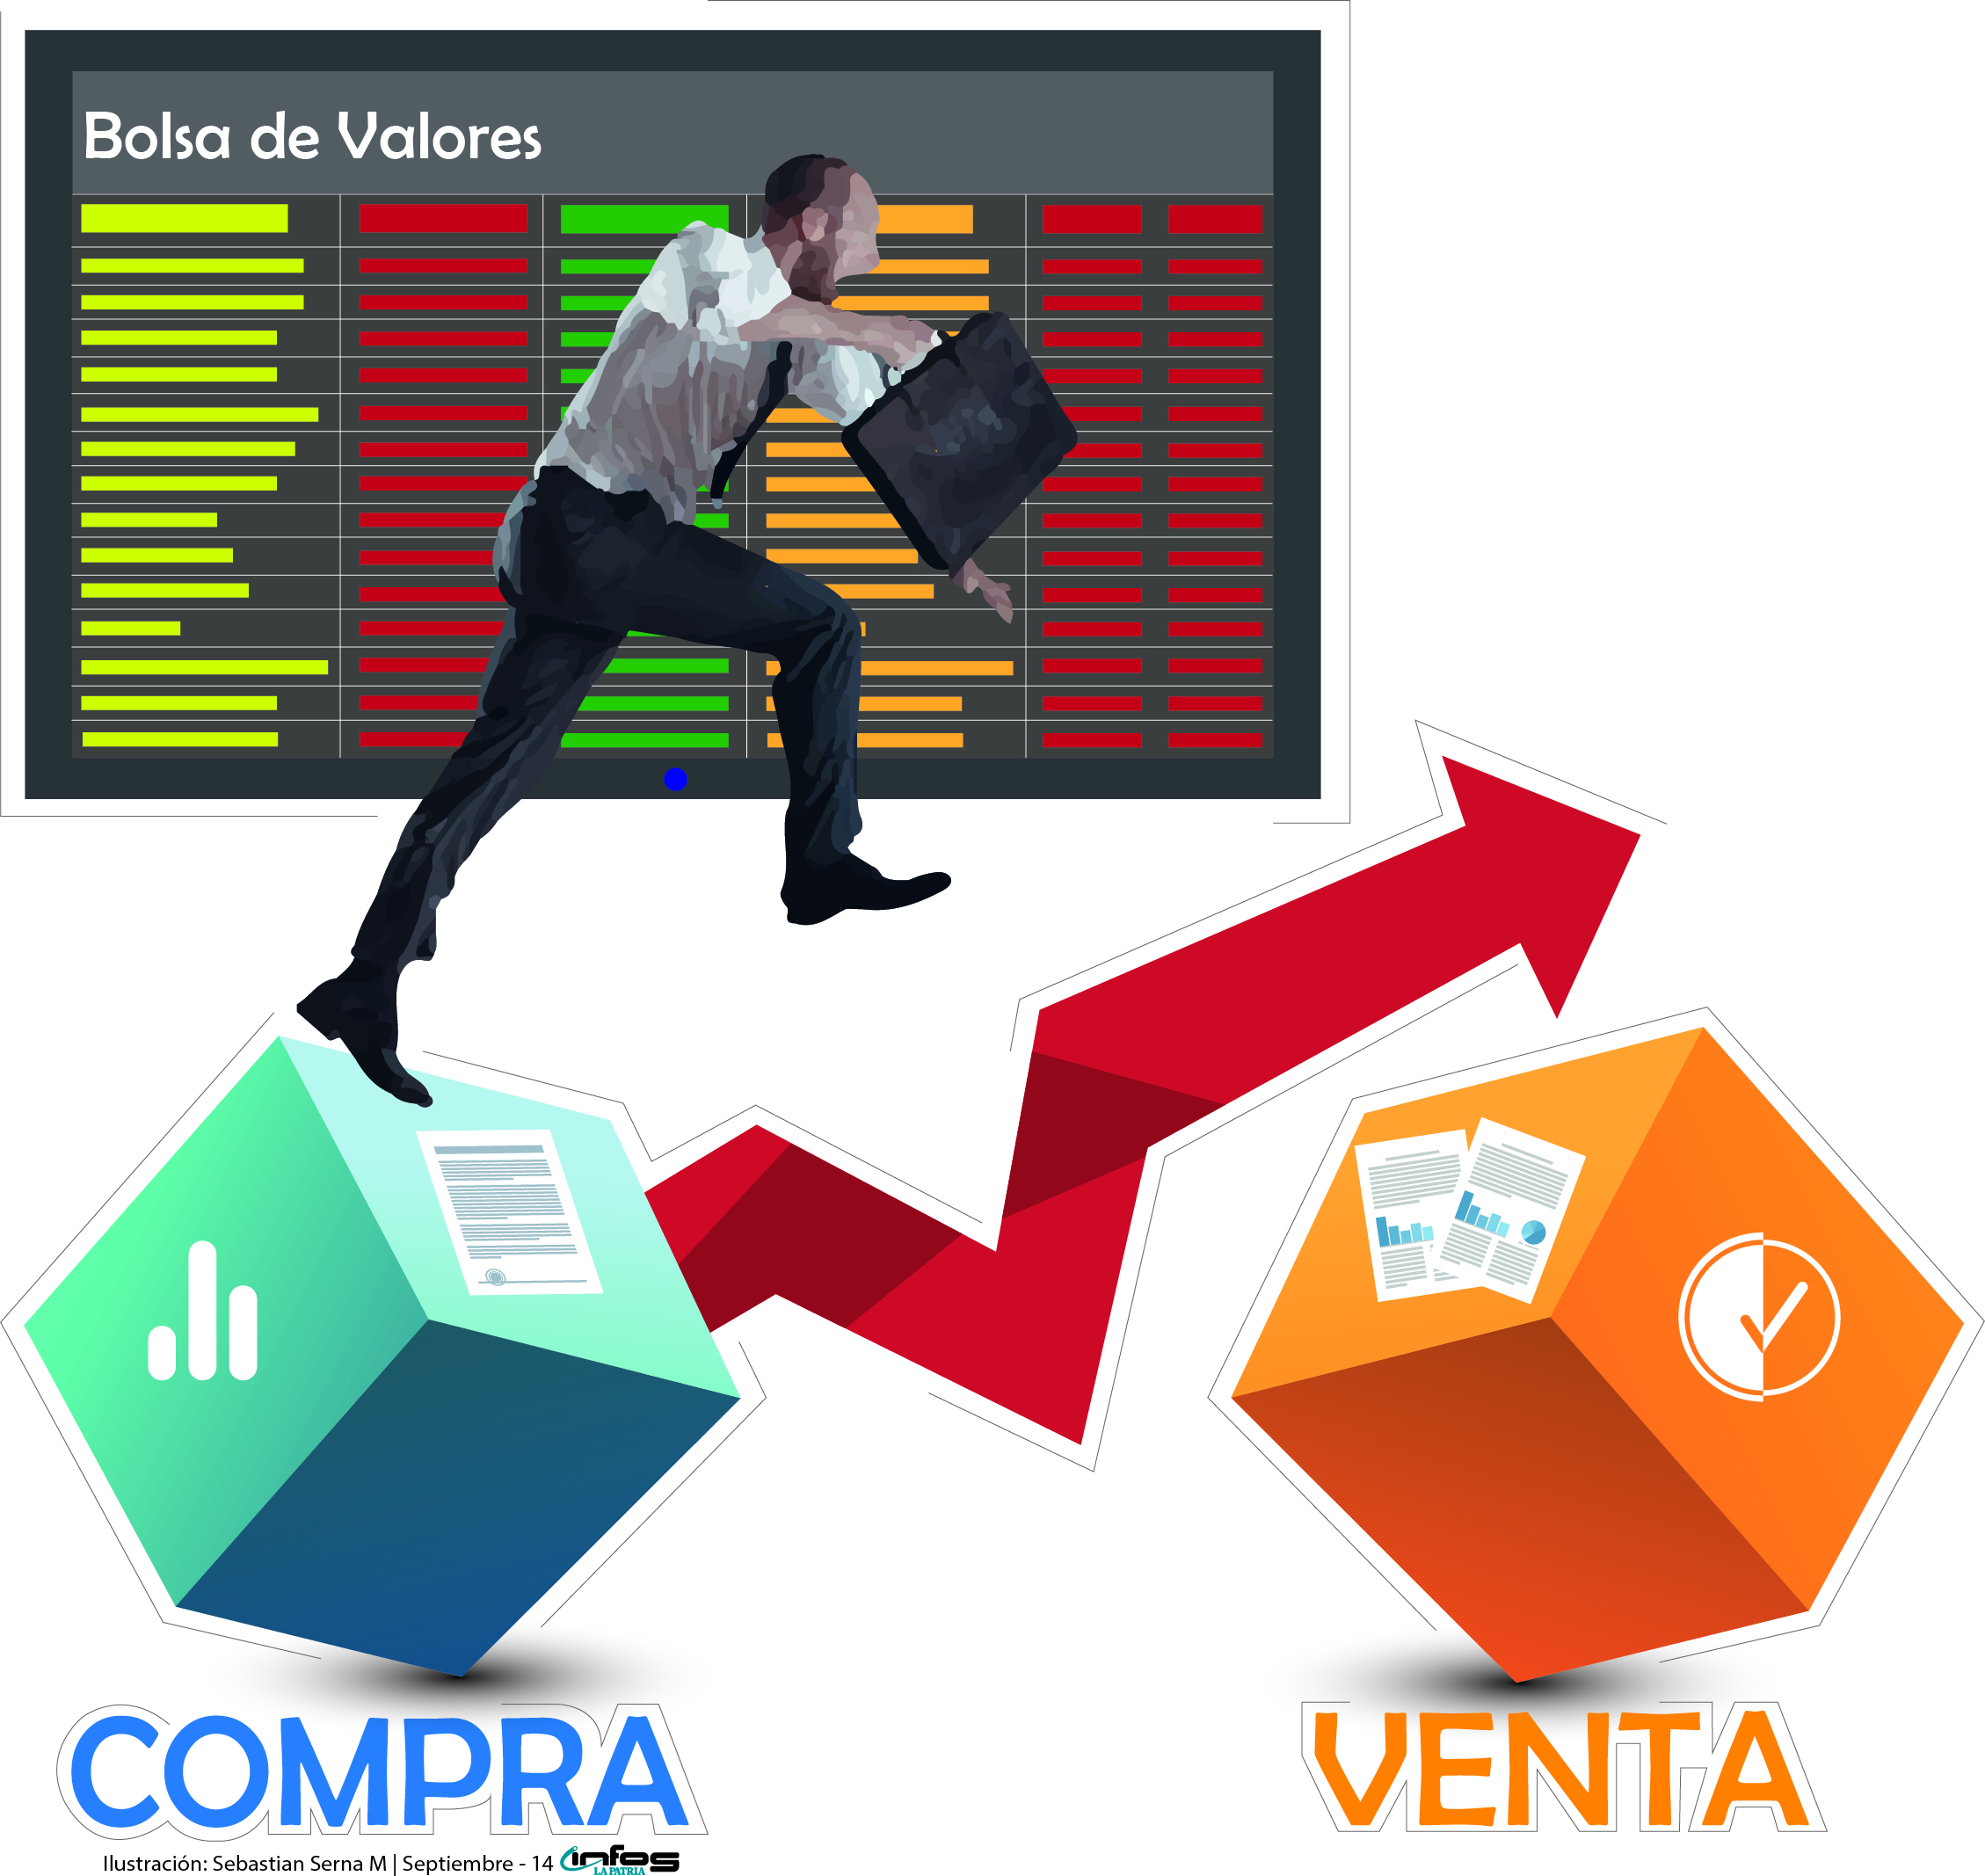 Fast trade with binary options online